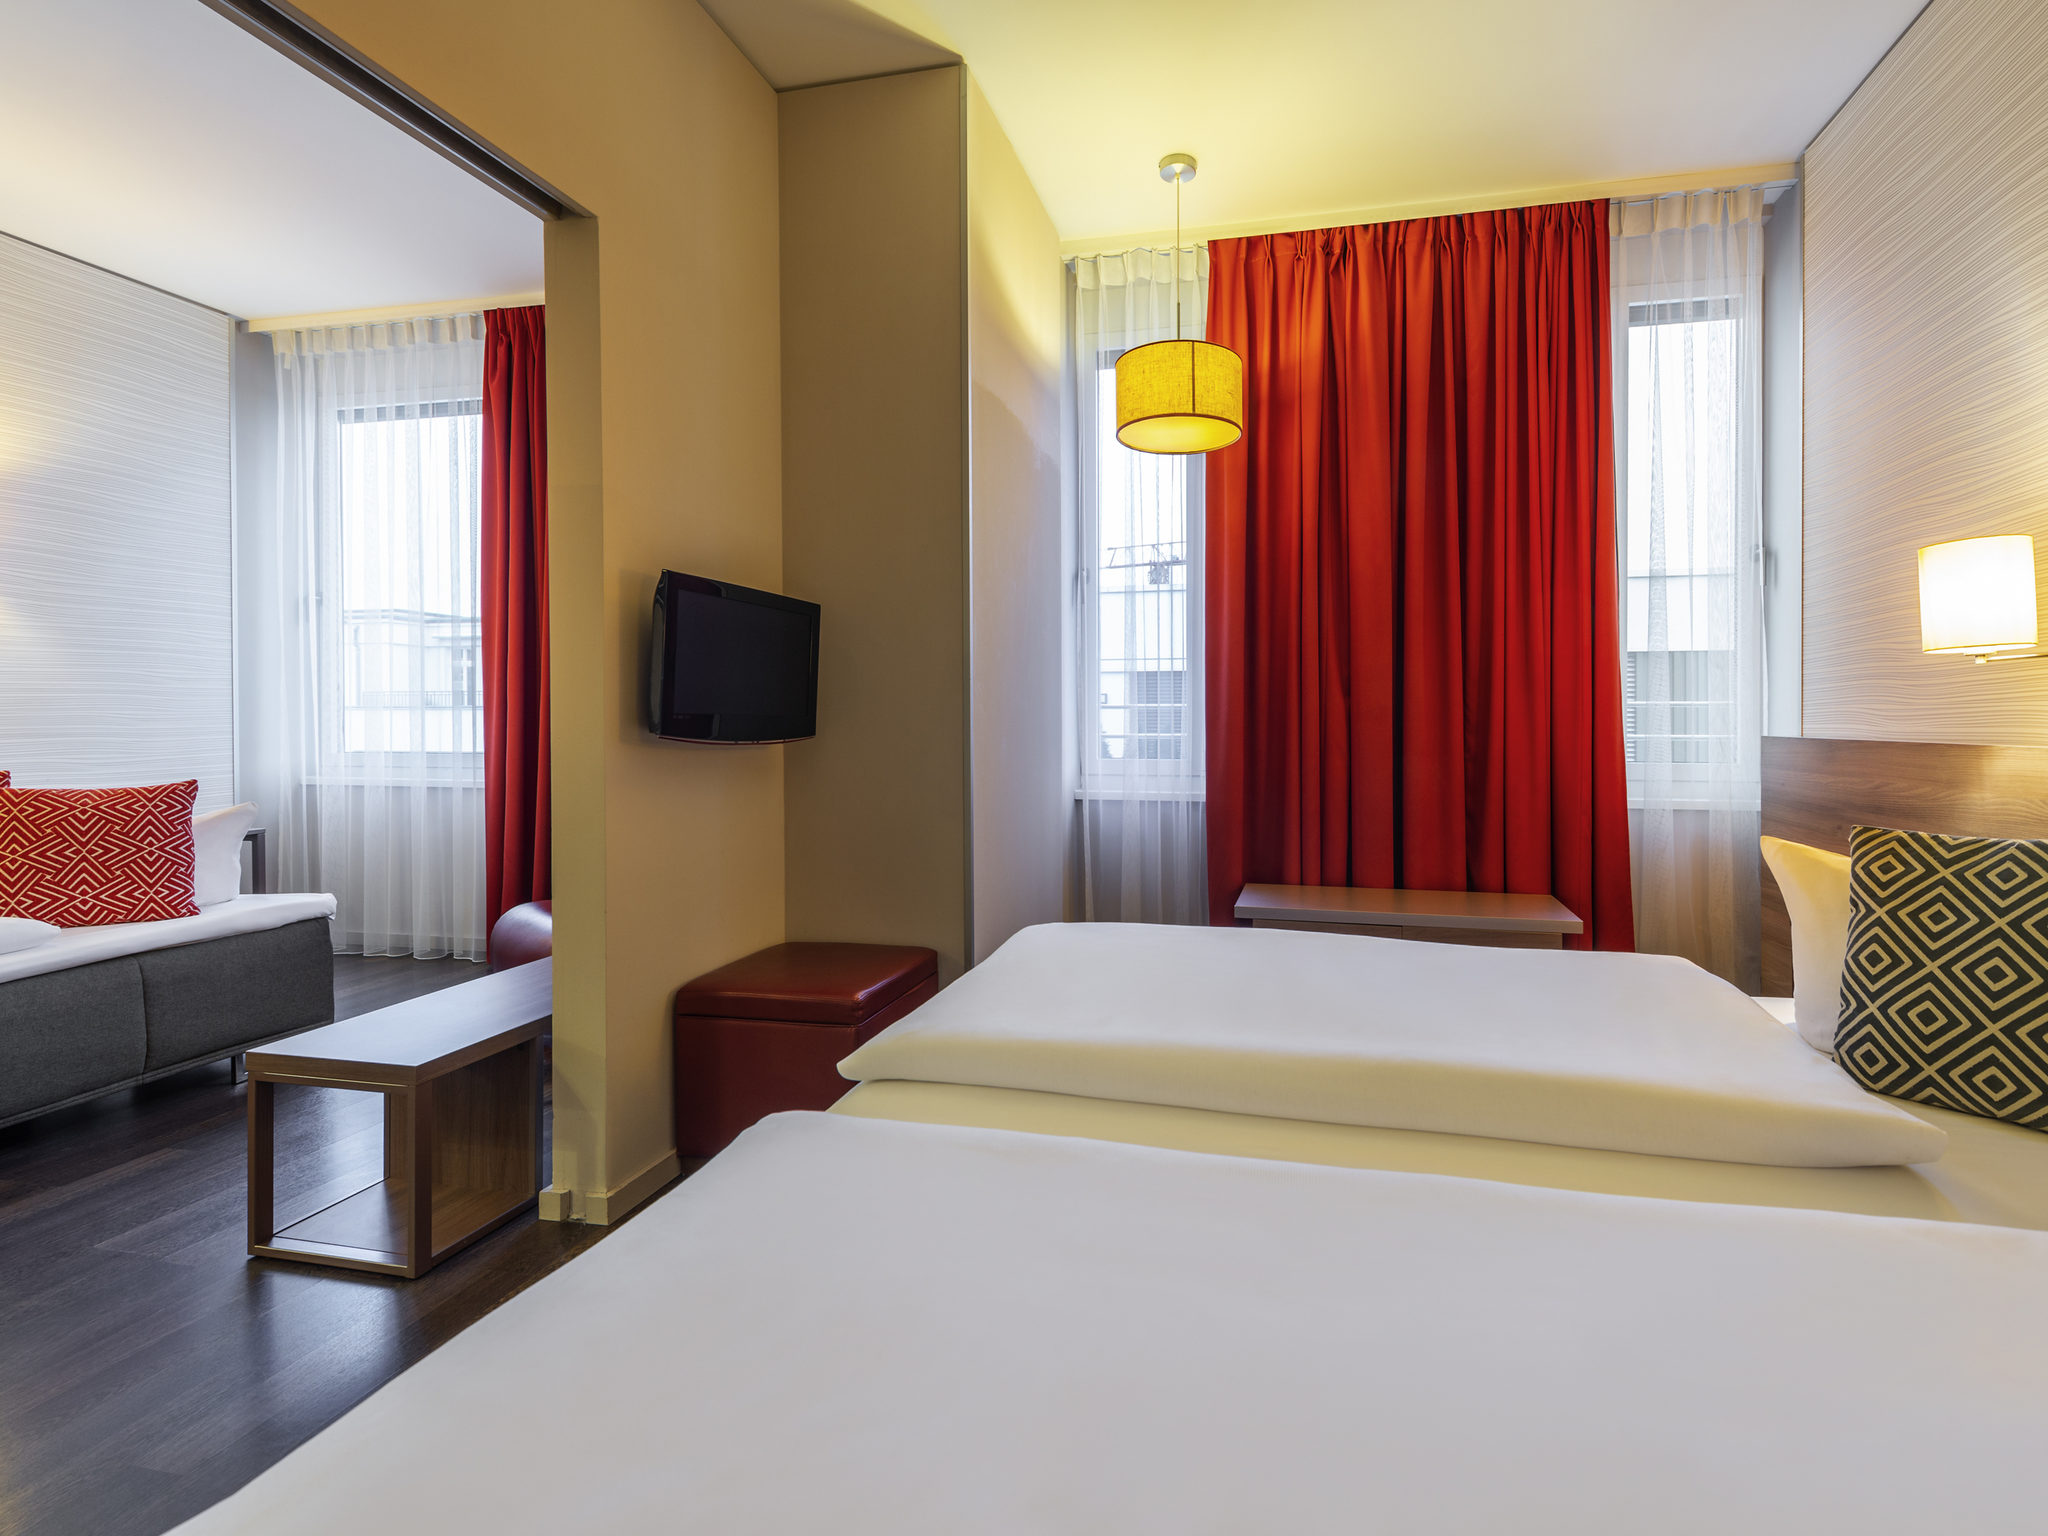 Aparthotel adagio berlin kurfuerstendamm booknow for Adagio appart city